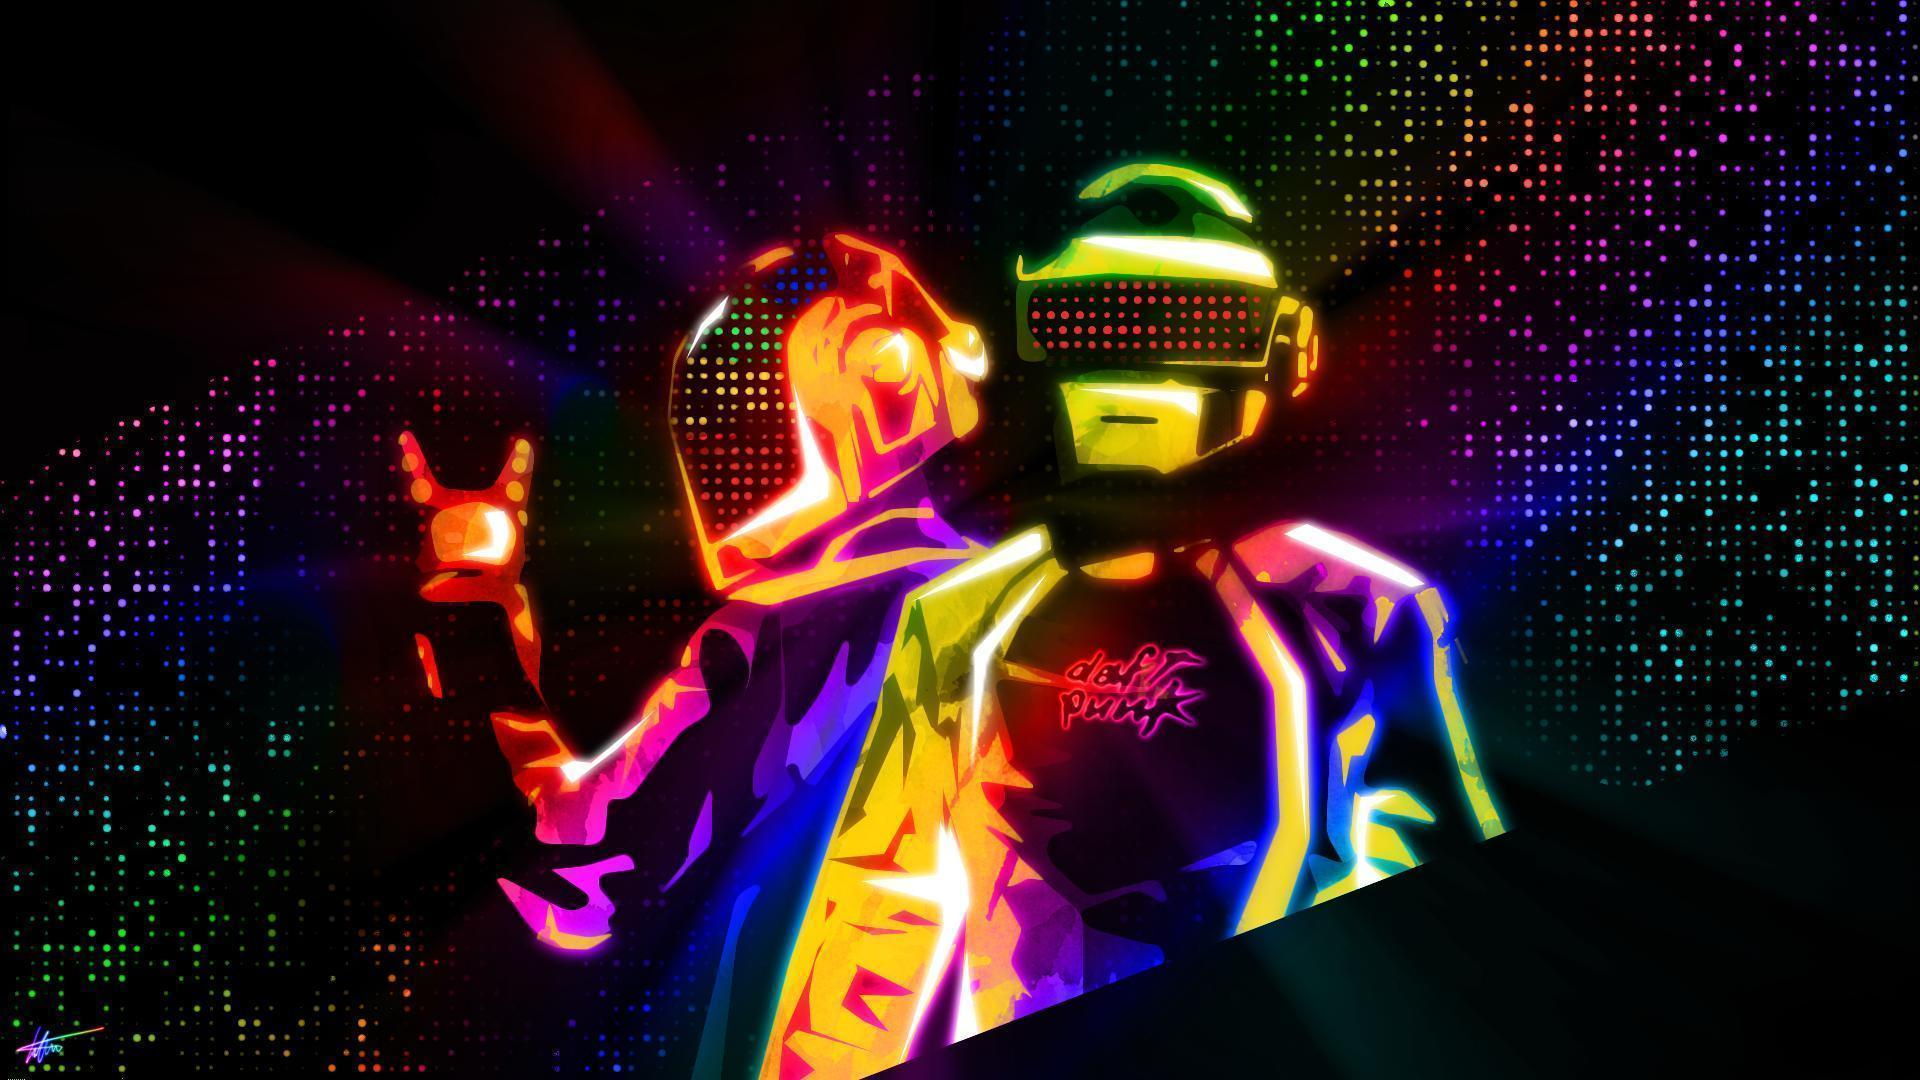 Daft Punk Wallpapers - Wallpaper Cave